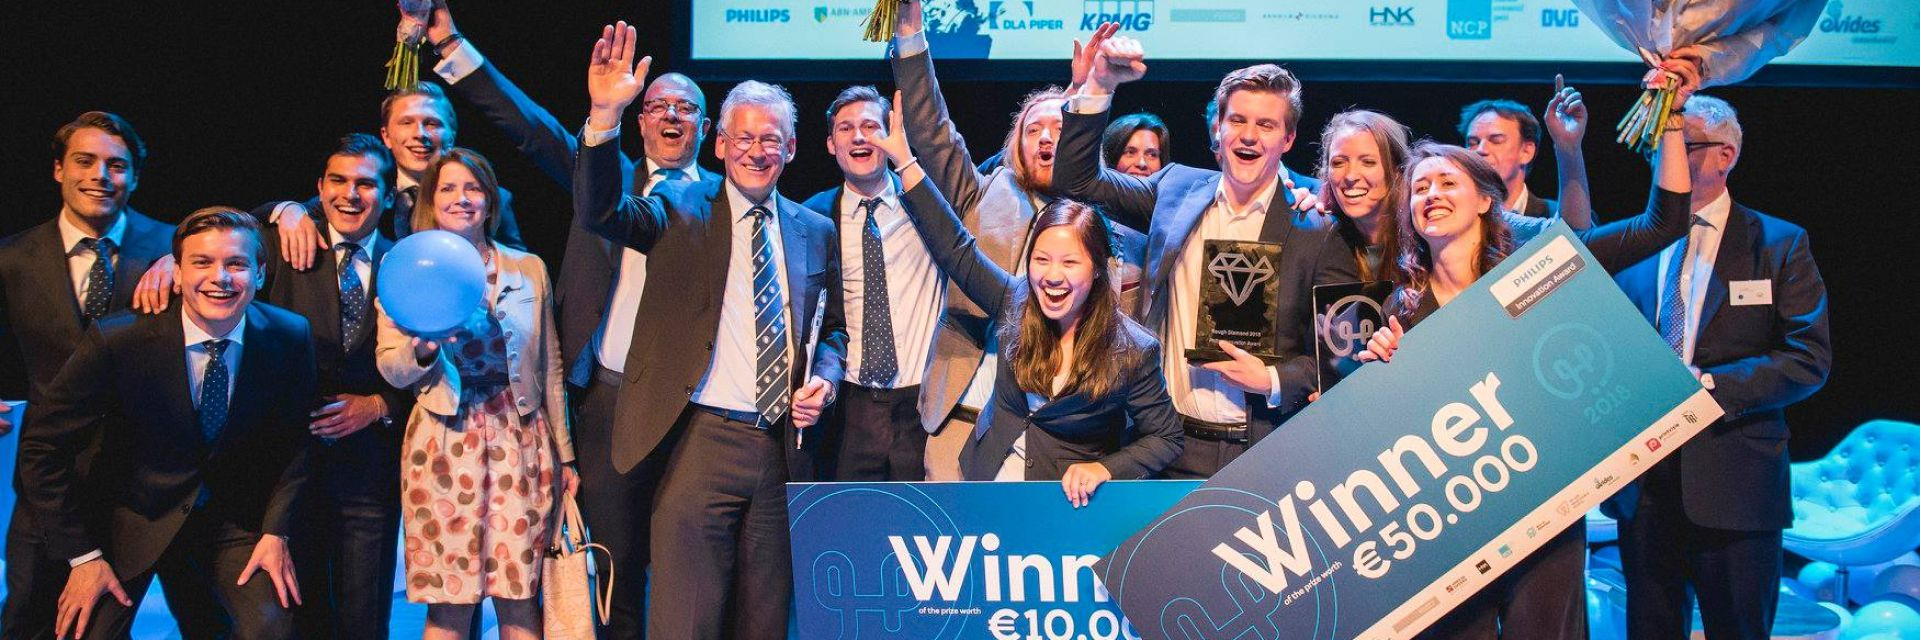 Innovative Northern Netherlands invited to Philips Innovation Award